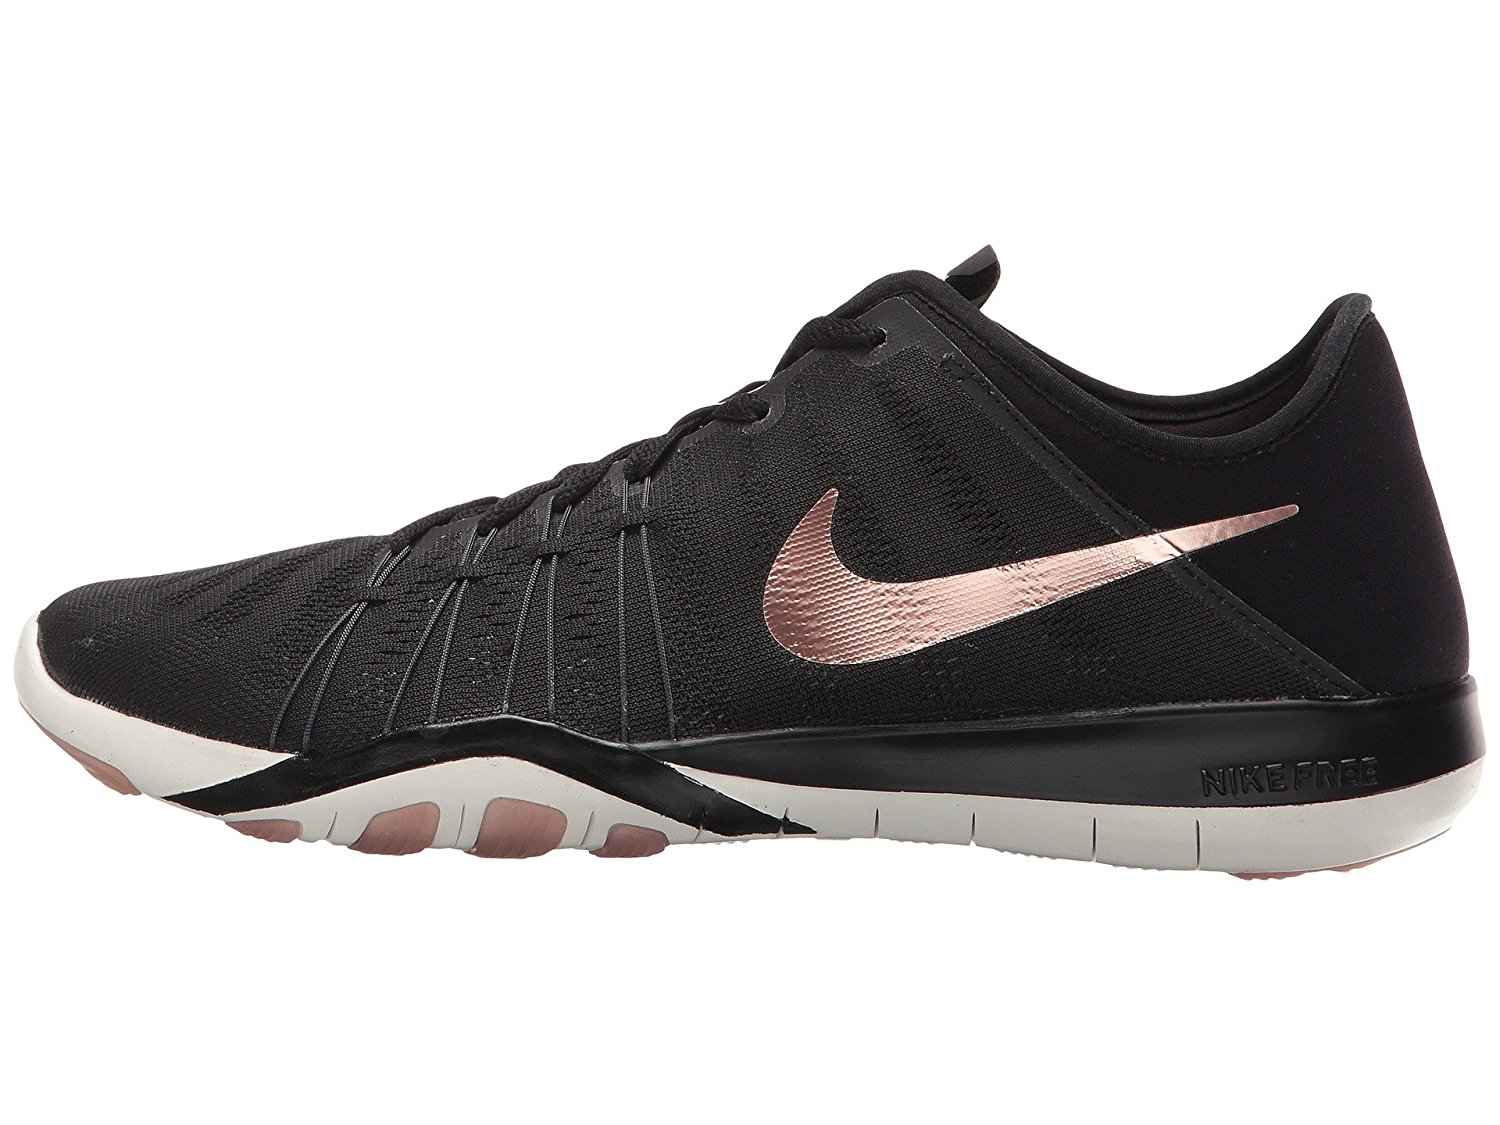 online store f72b4 7bae5 Amazon.com   Nike Free TR 6 Women s Cross Training Shoes (9.5 B ...